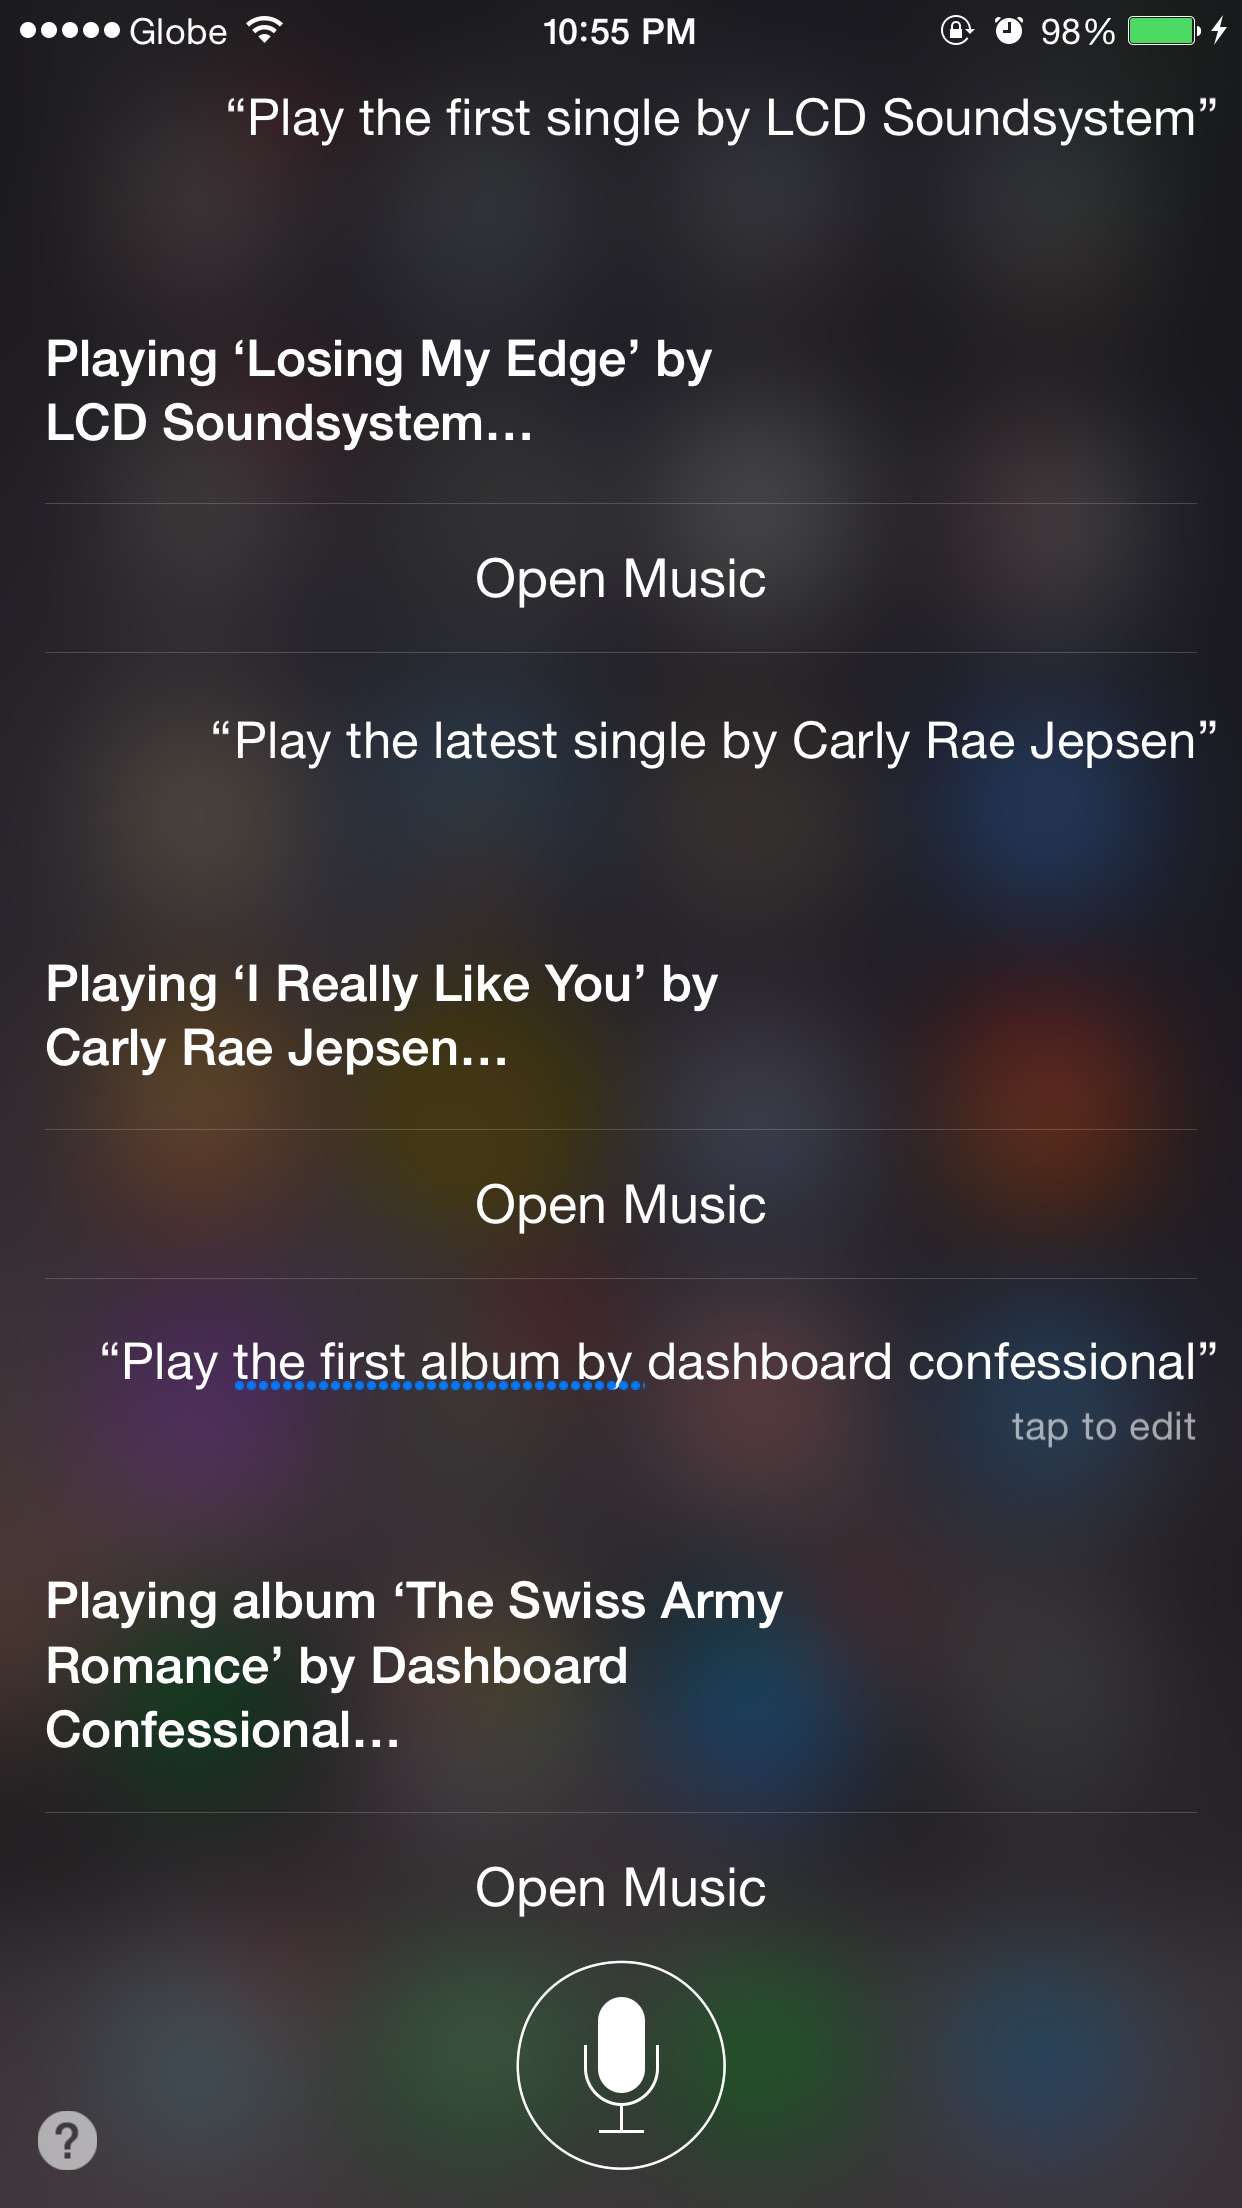 Siri, what came first?